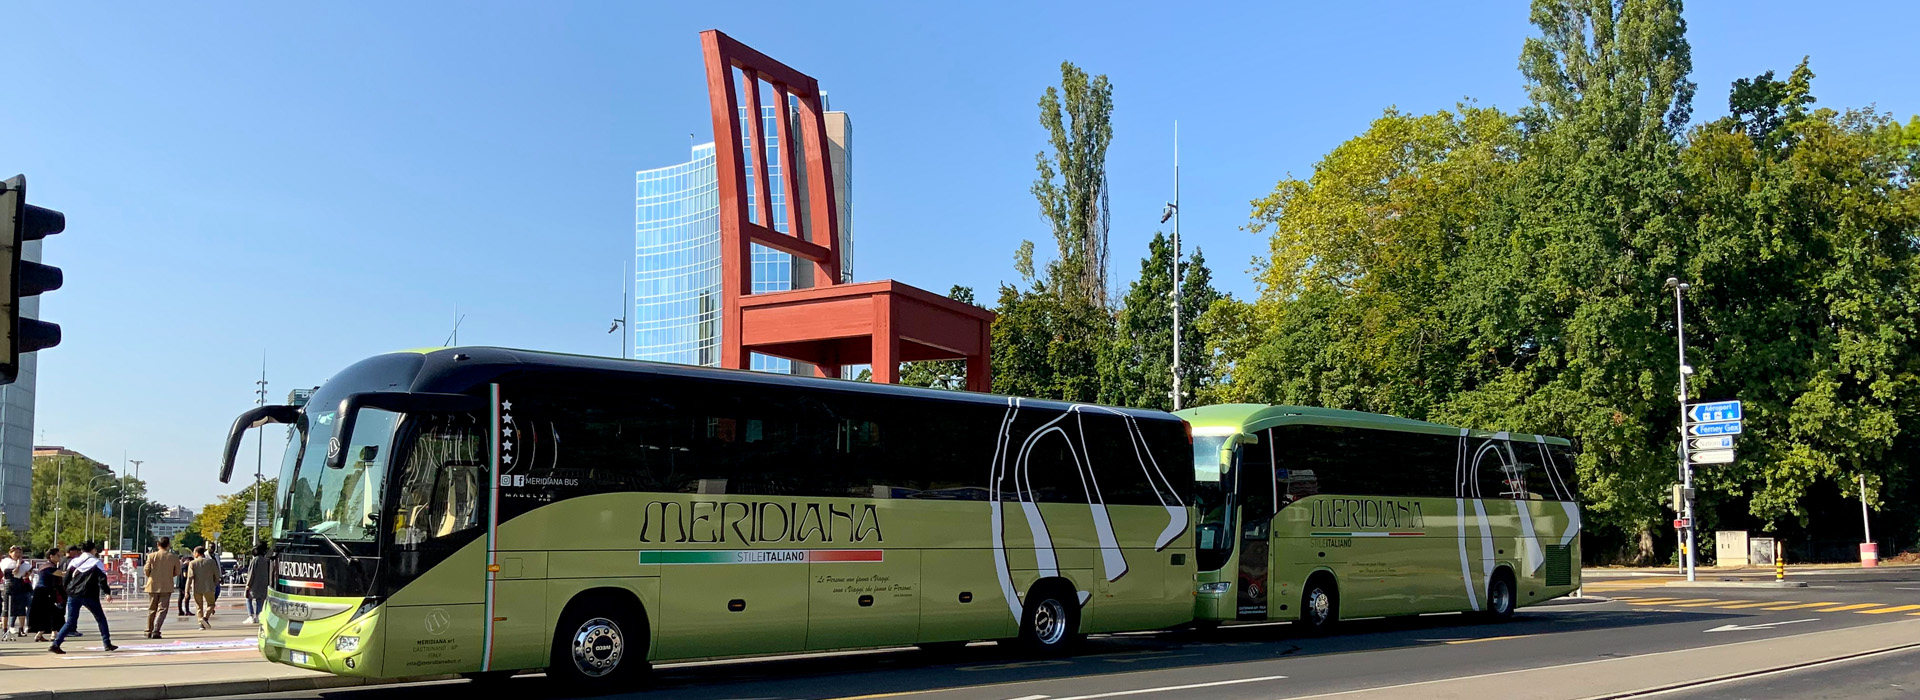 Trasfer privati ​​e tour in autobus